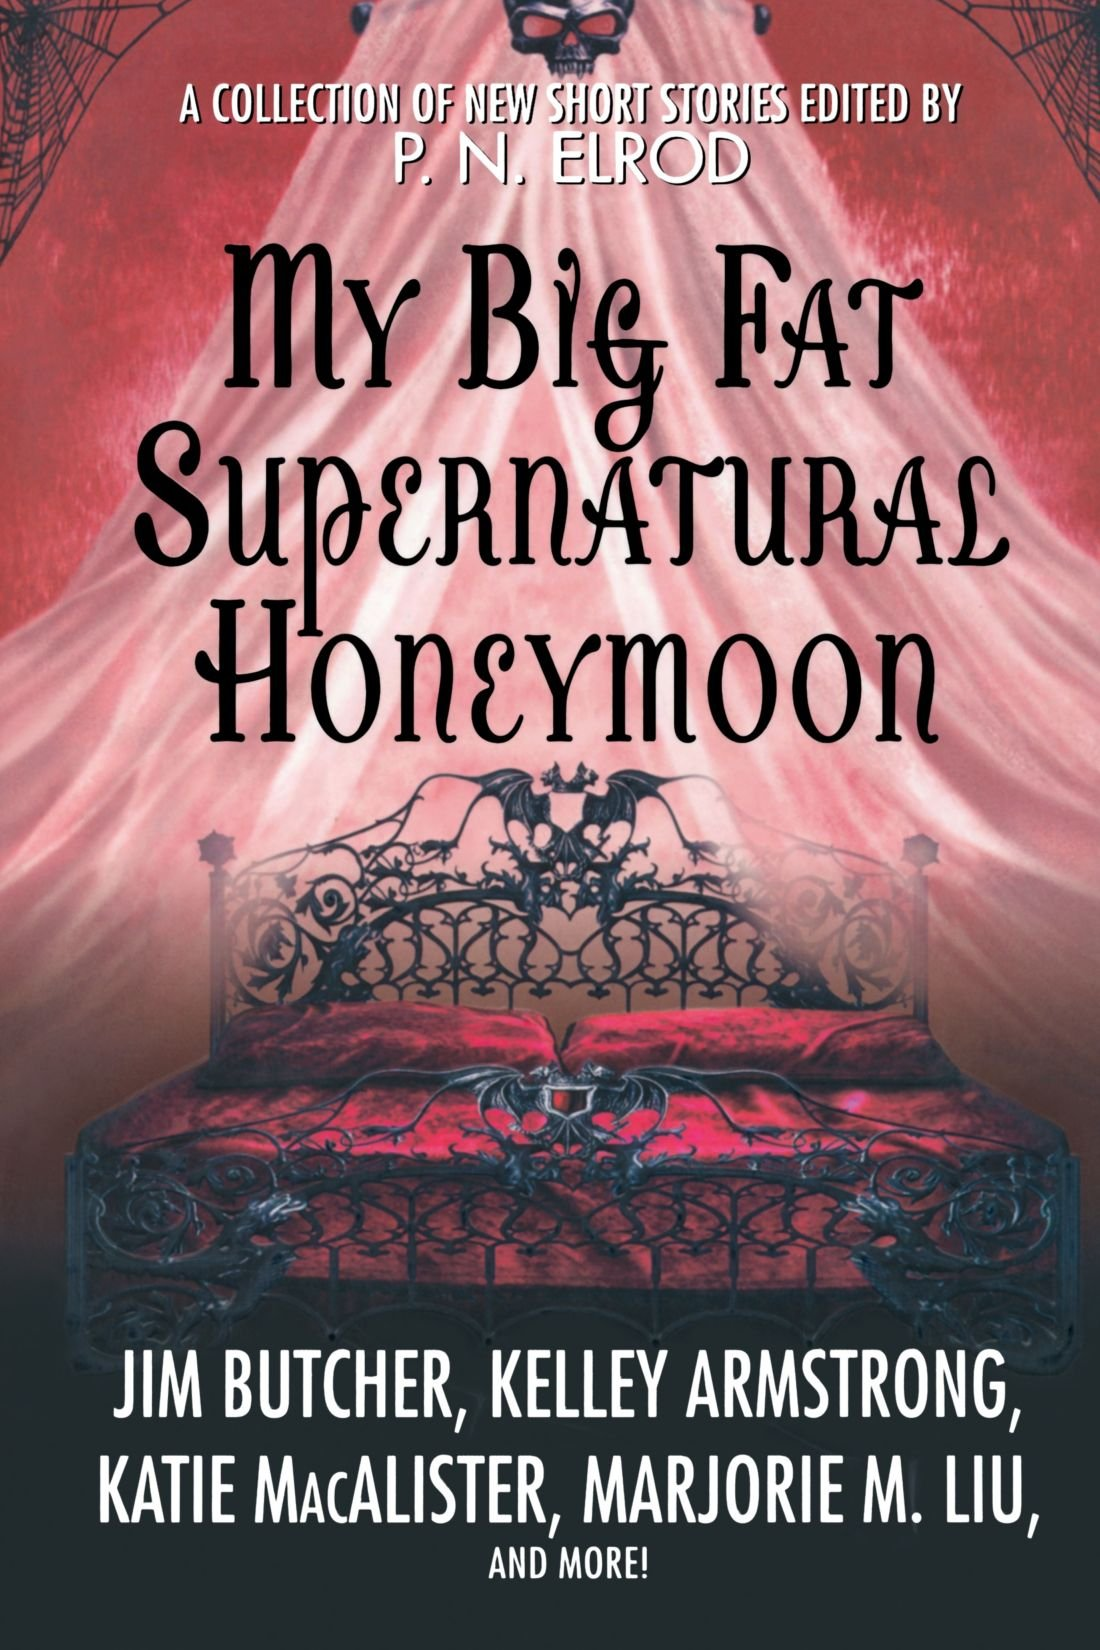 Image result for my big fat supernatural honeymoon book cover